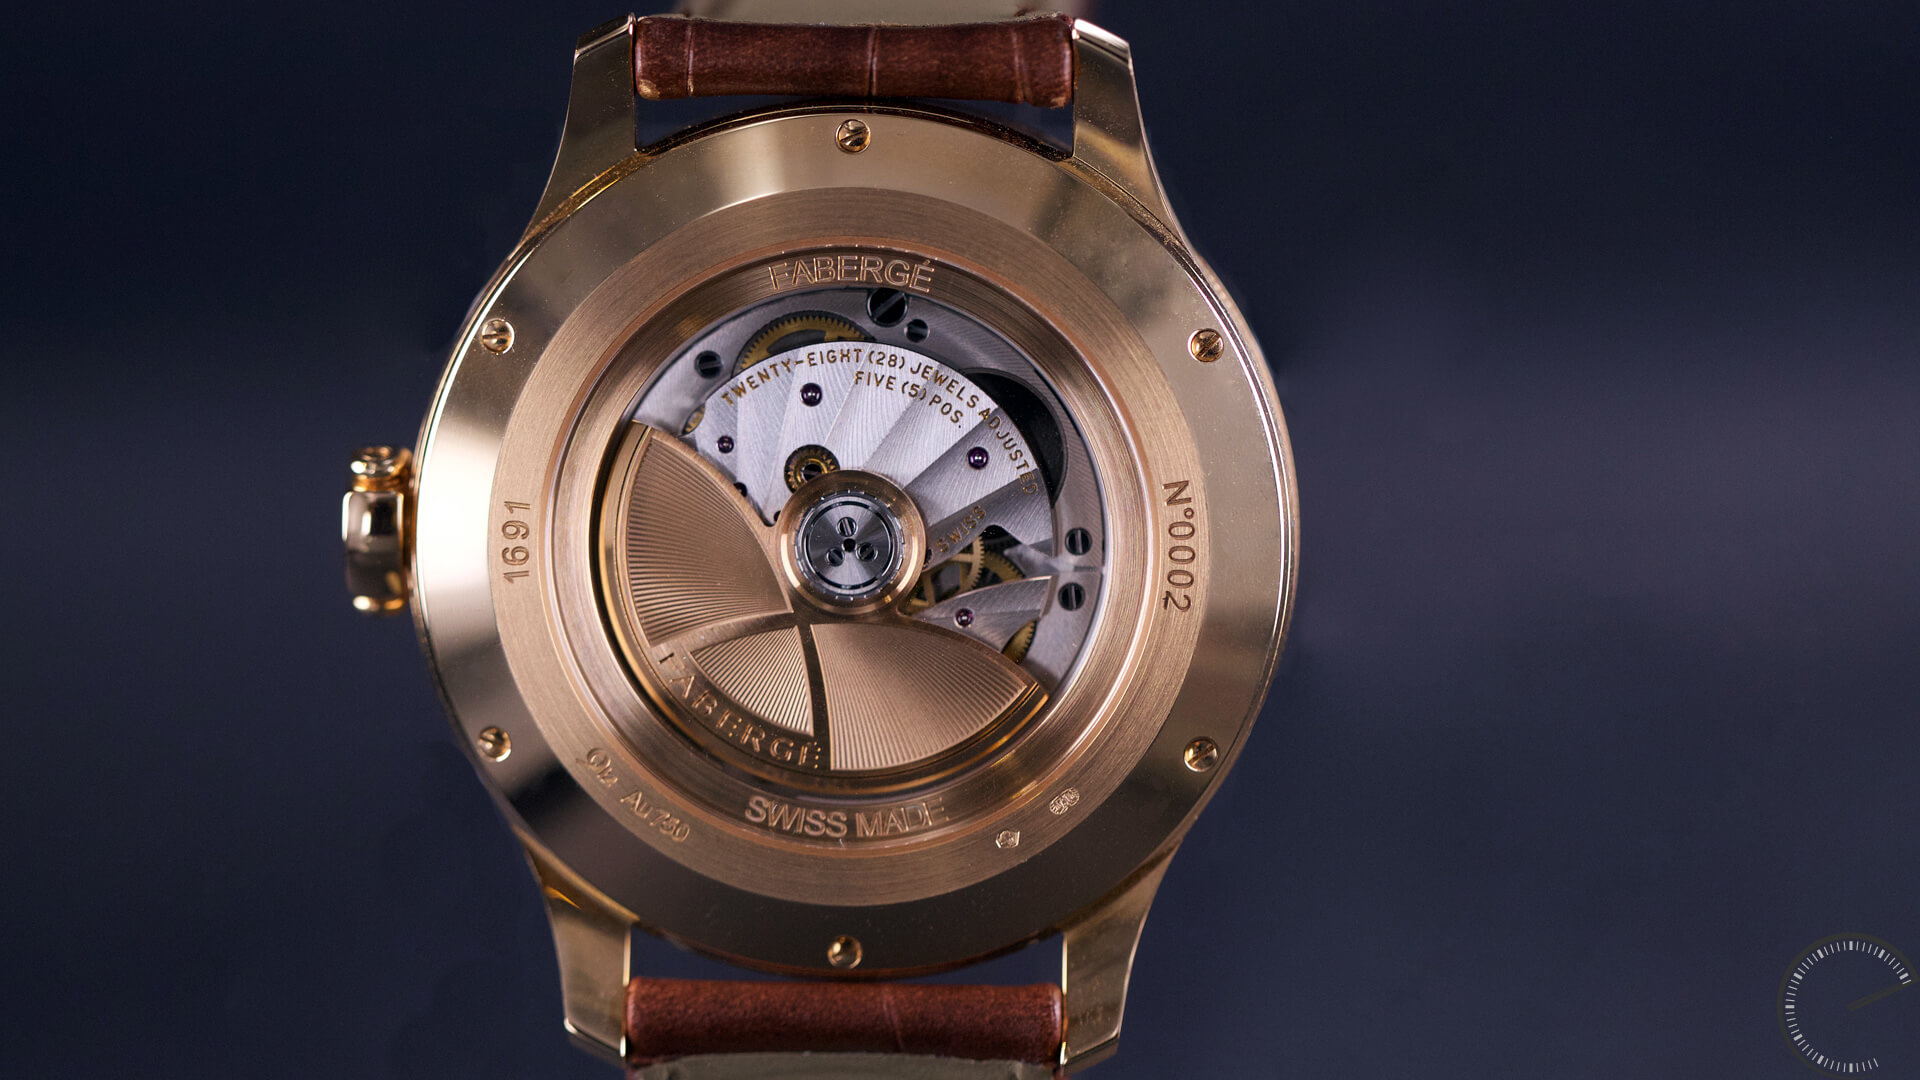 Image of Faberge Altruist luxury watch with guilloche dial